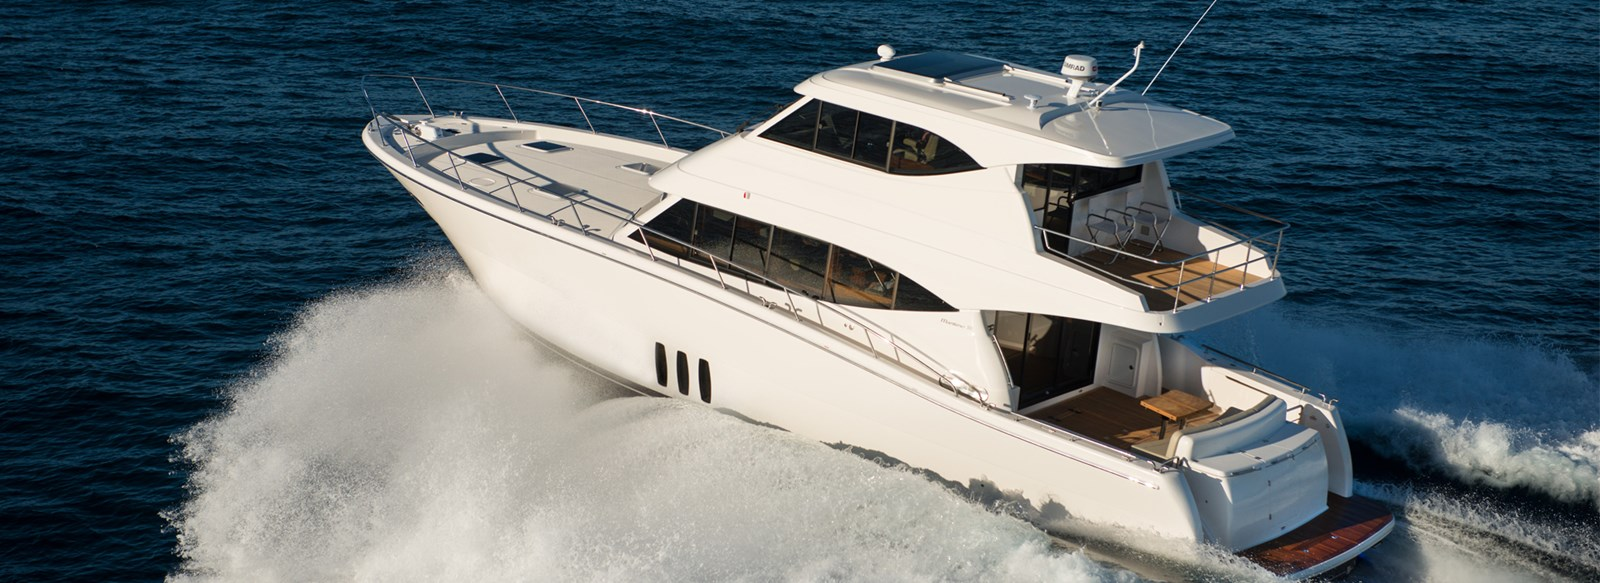 New Maritimo M59 Motor Yacht Yachts For Sale